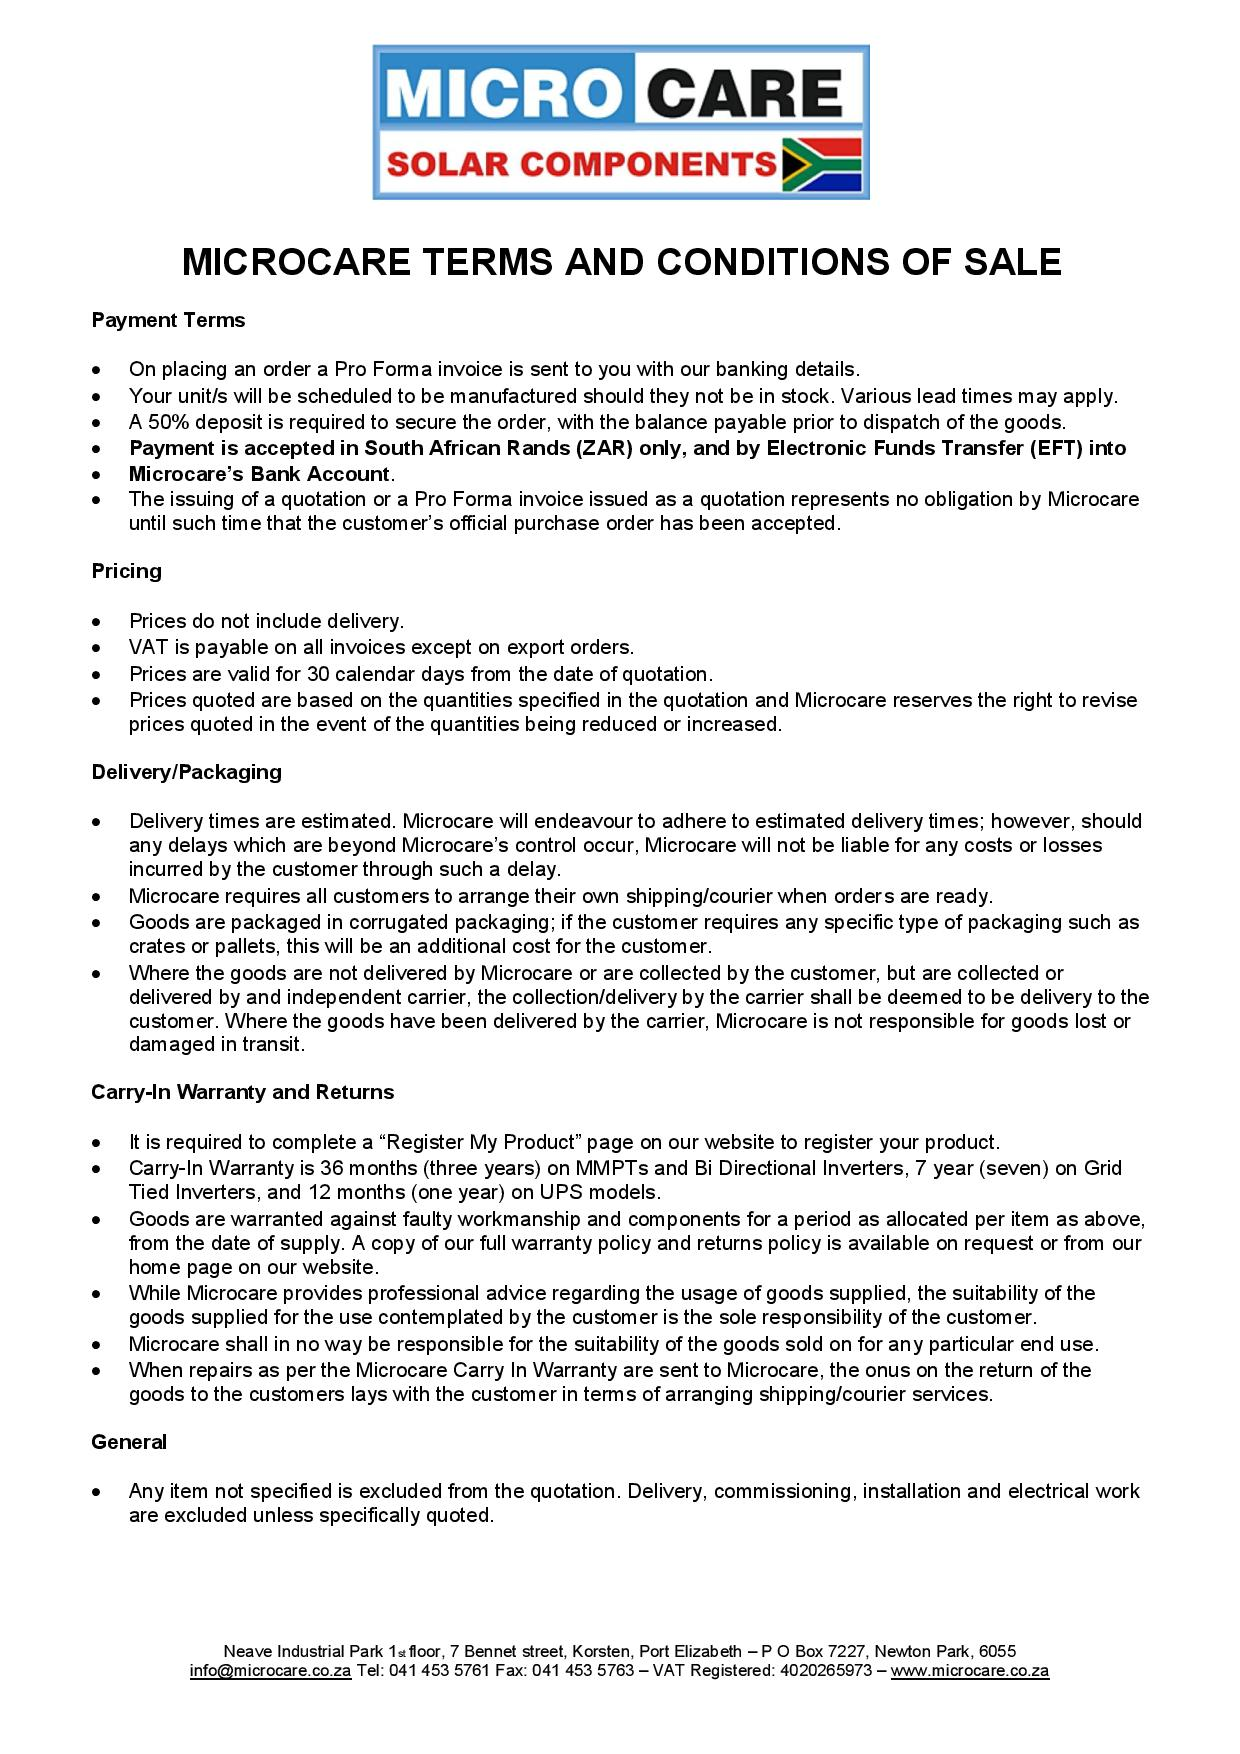 Microcare T&Cs of sale-page-001